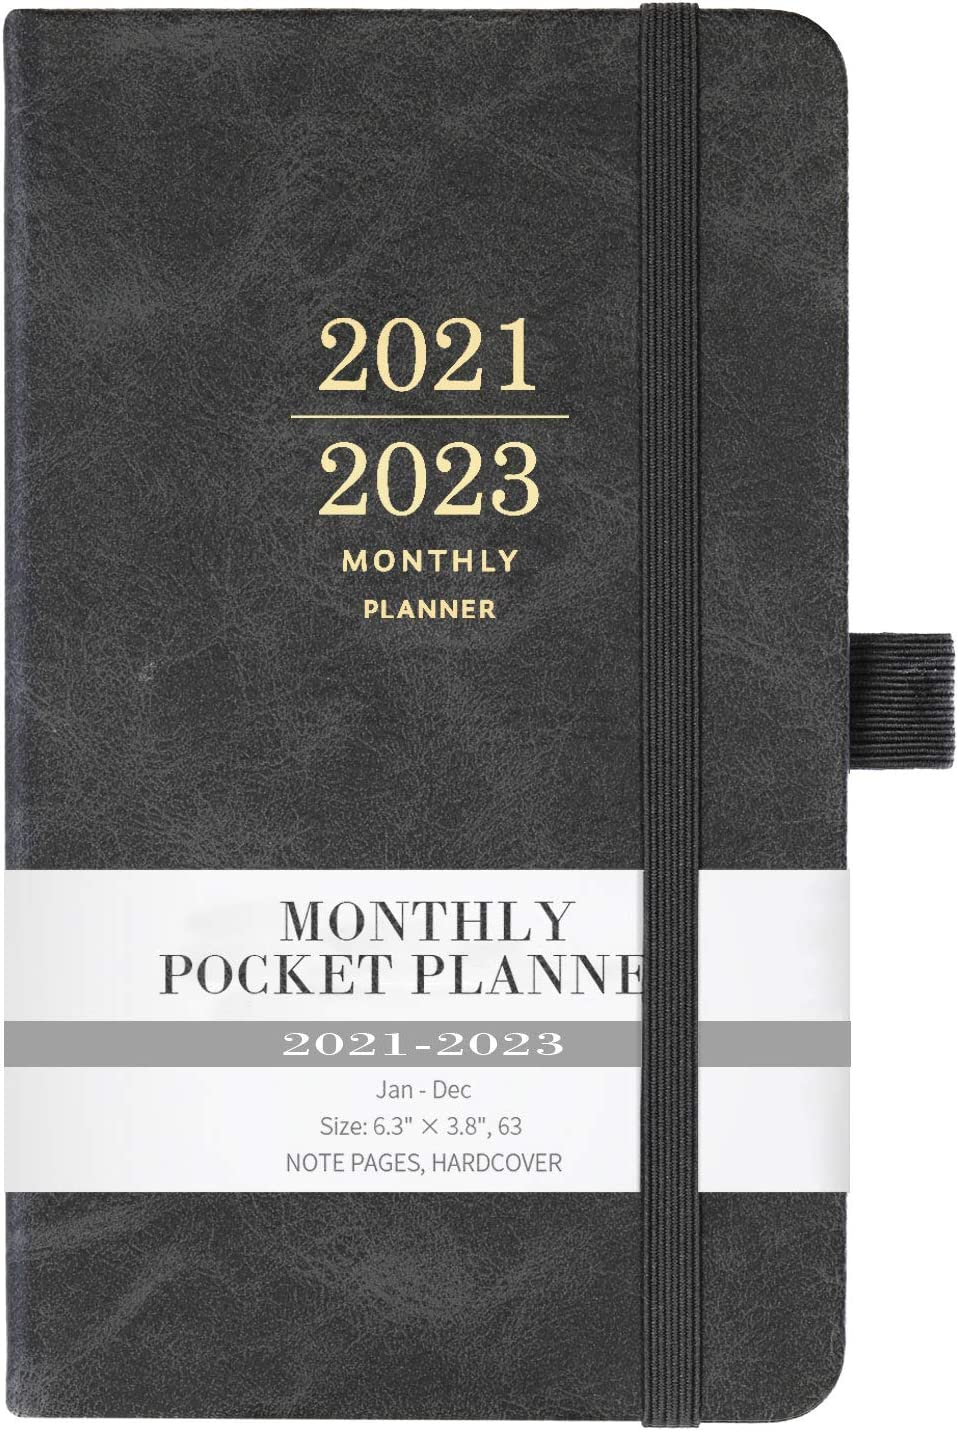 Amazon Com 2021 2023 Monthly Pocket Planner With Pen Hold Inner Pocket And 63 Notes Pages 6 6 X 3 9 Office Products